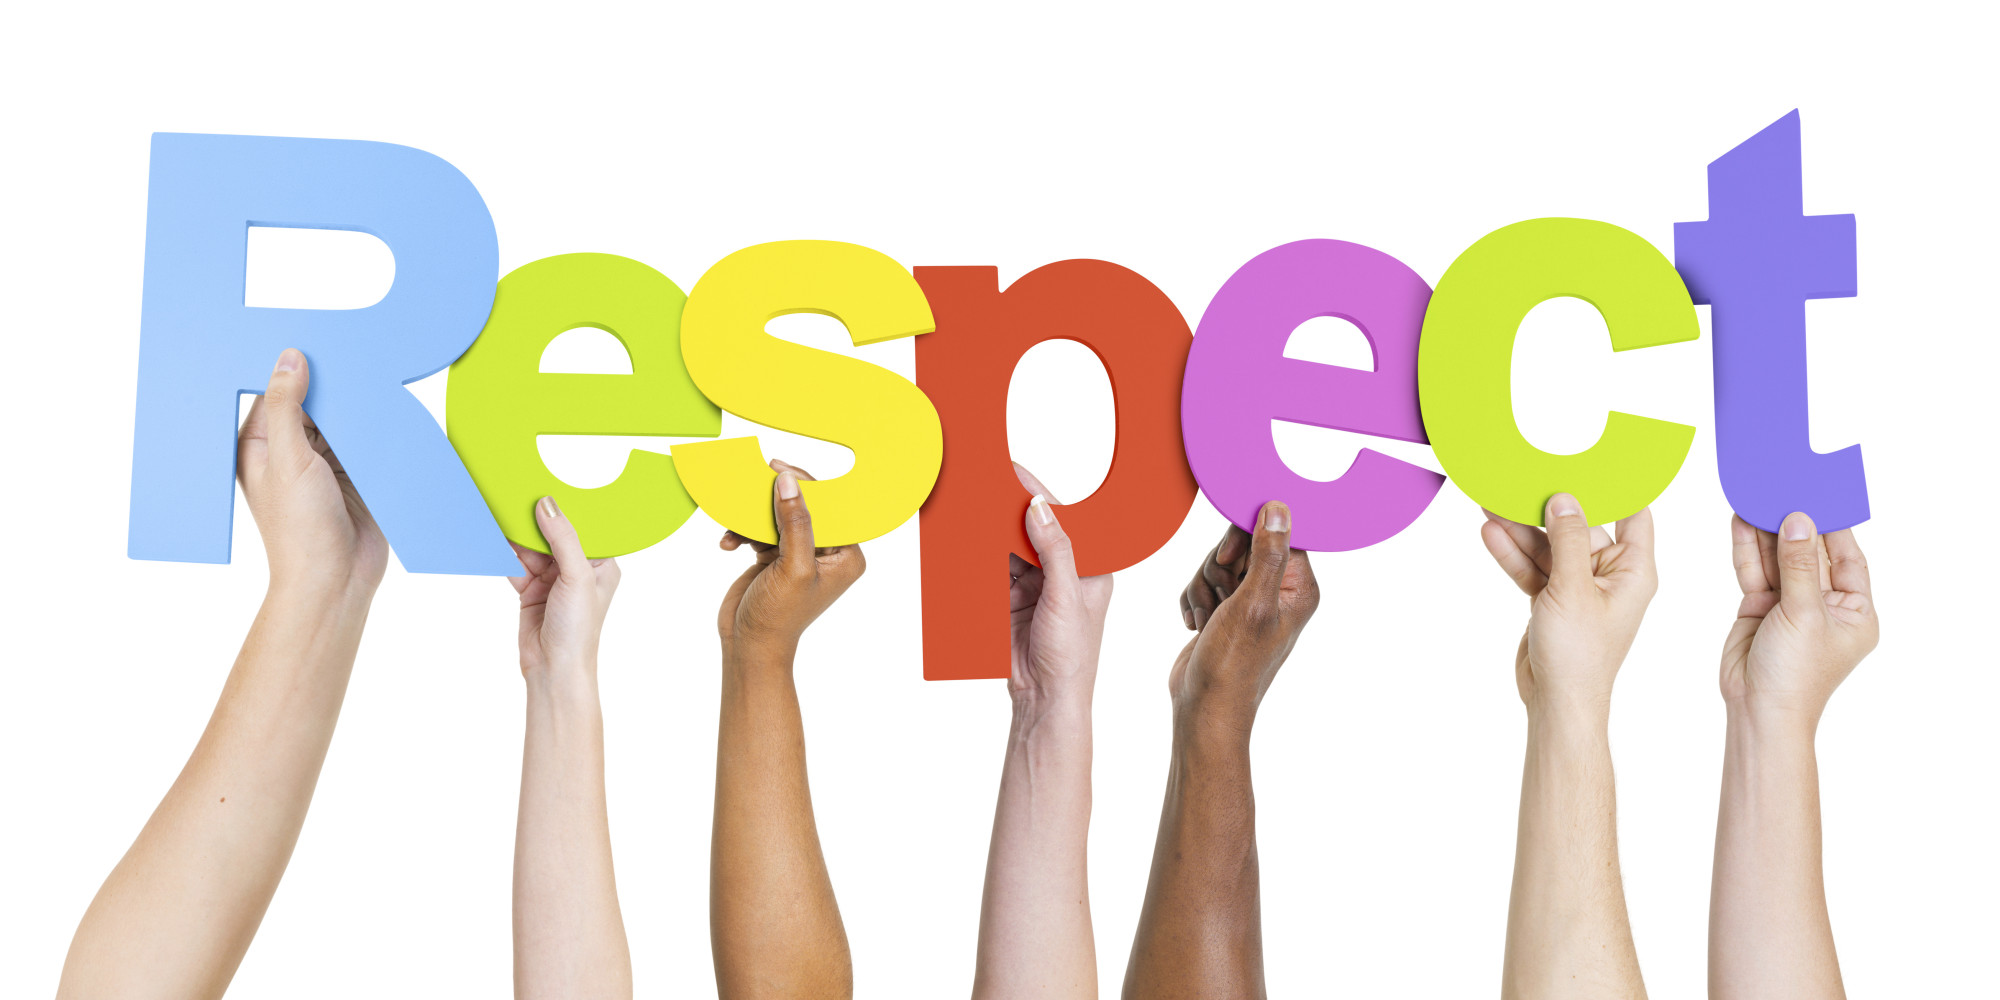 learning to respect yourself by respecting others huffpost